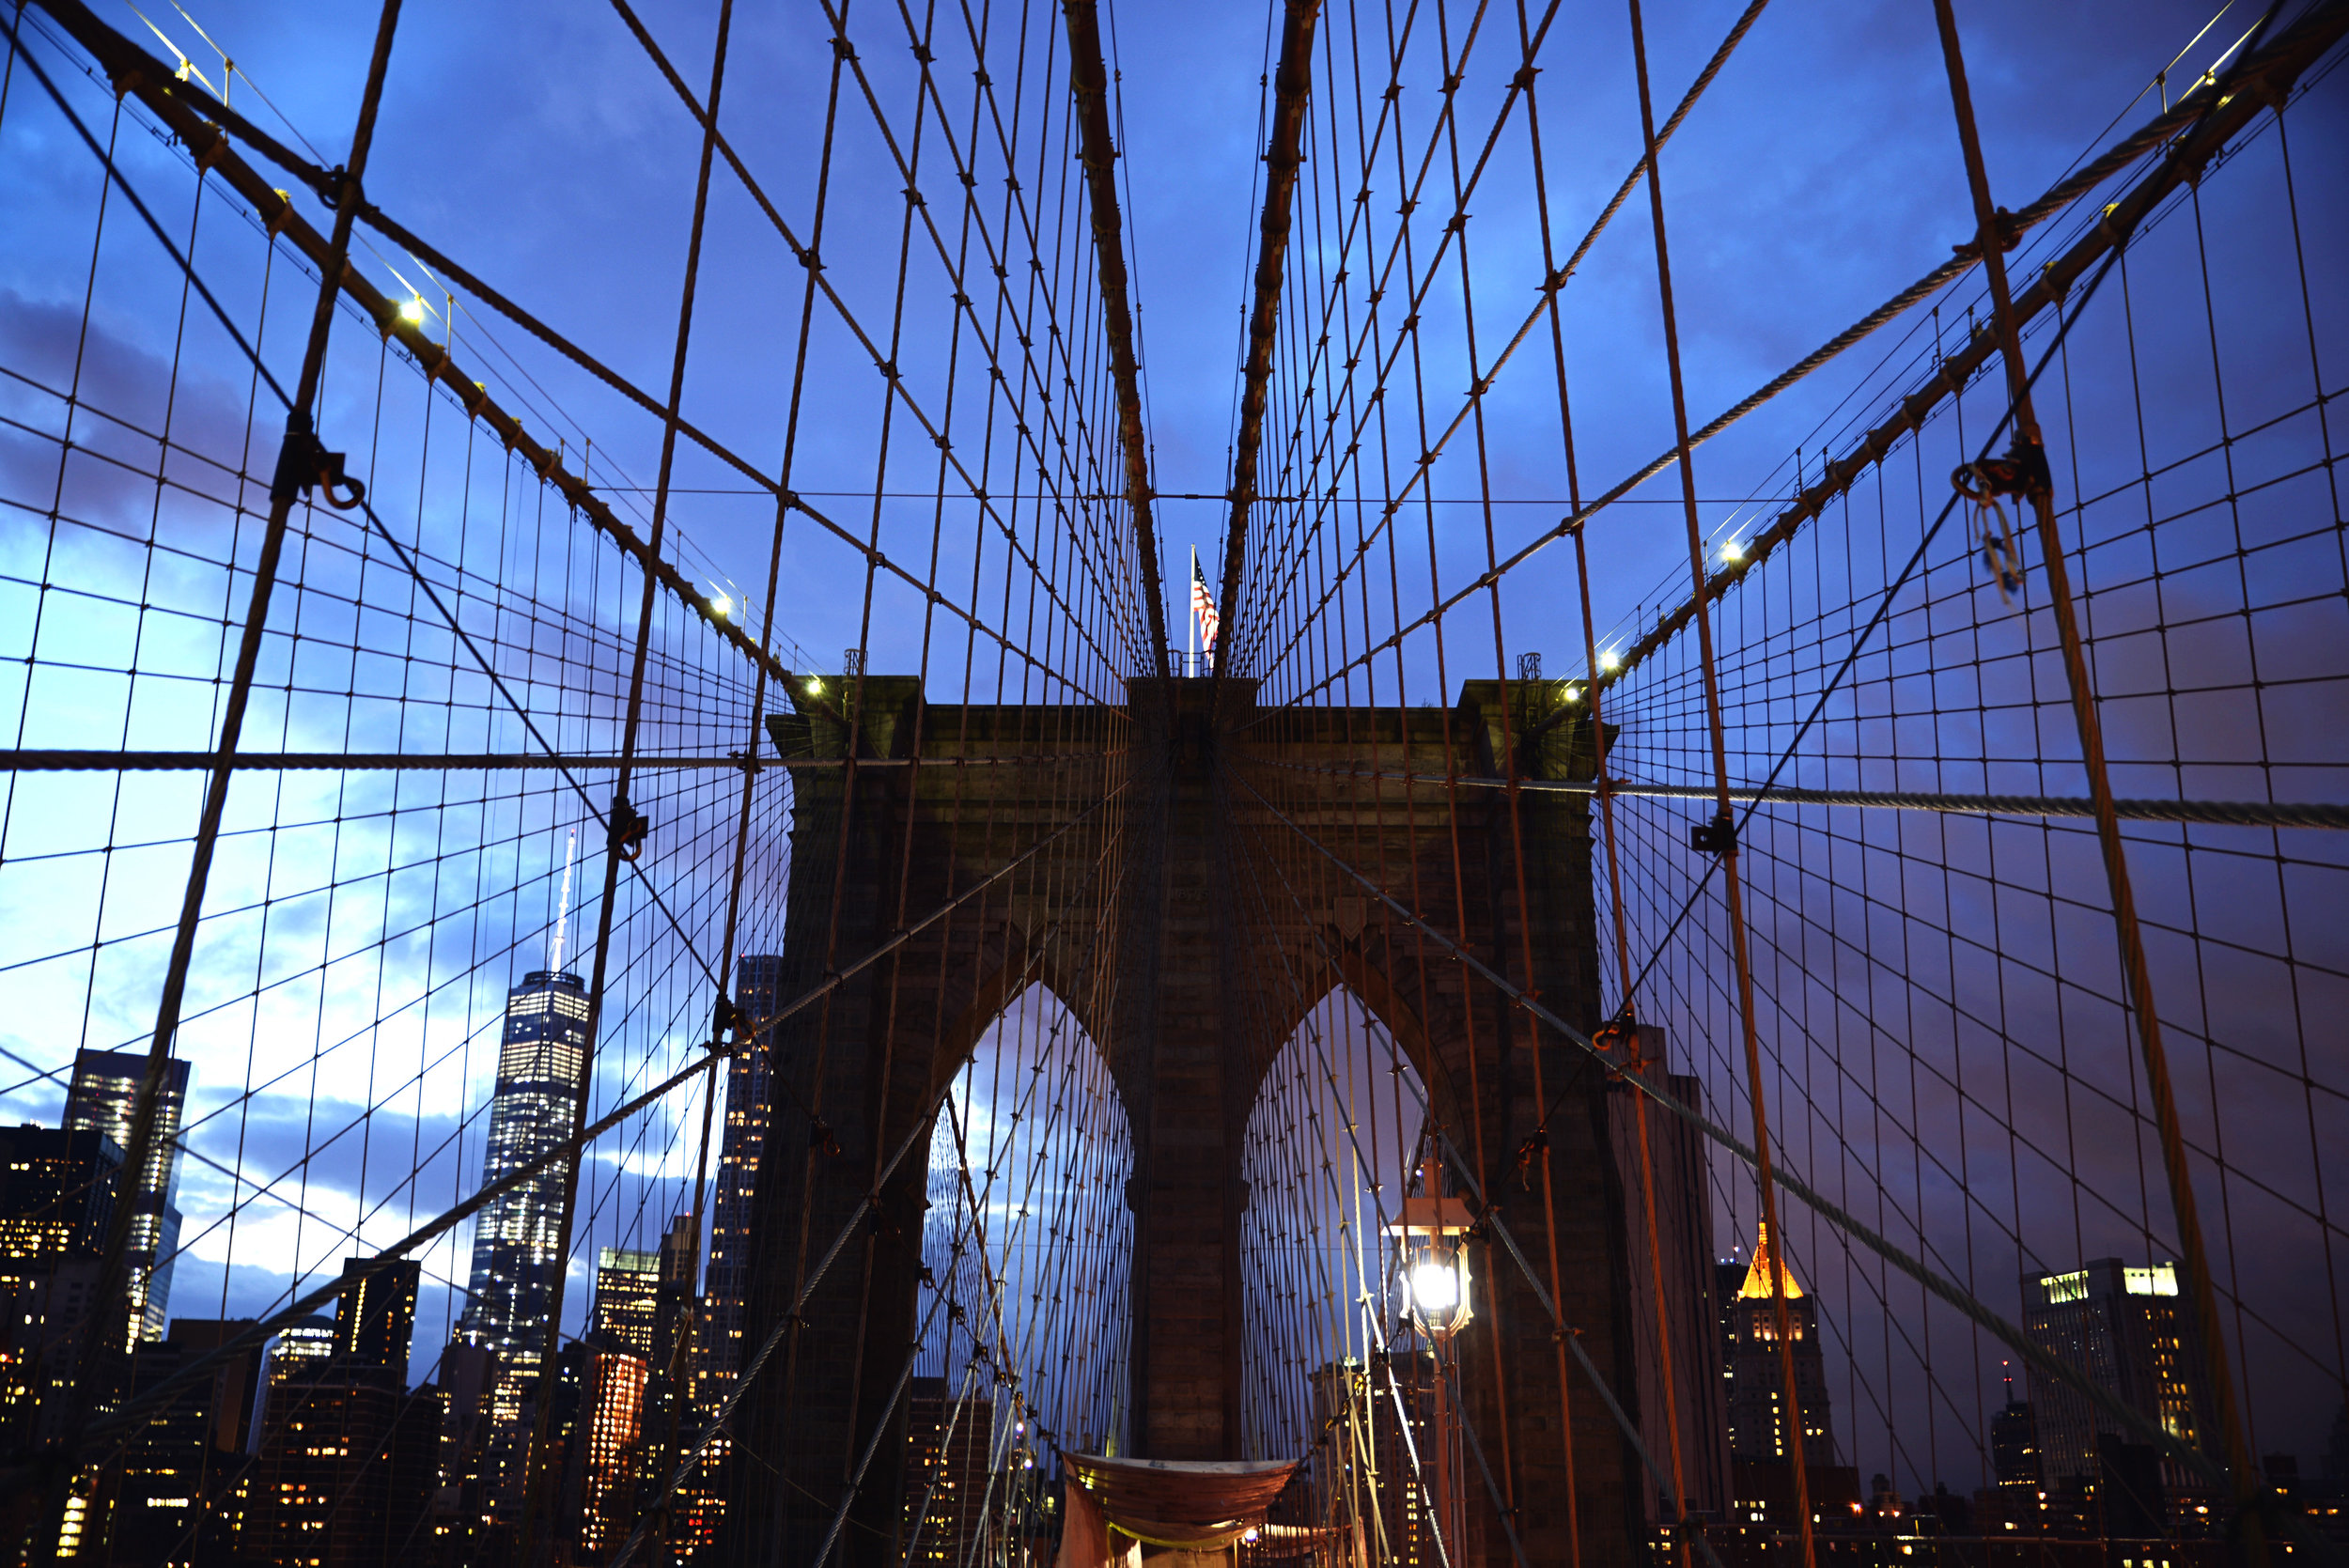 brooklyn-bridge-02.jpg